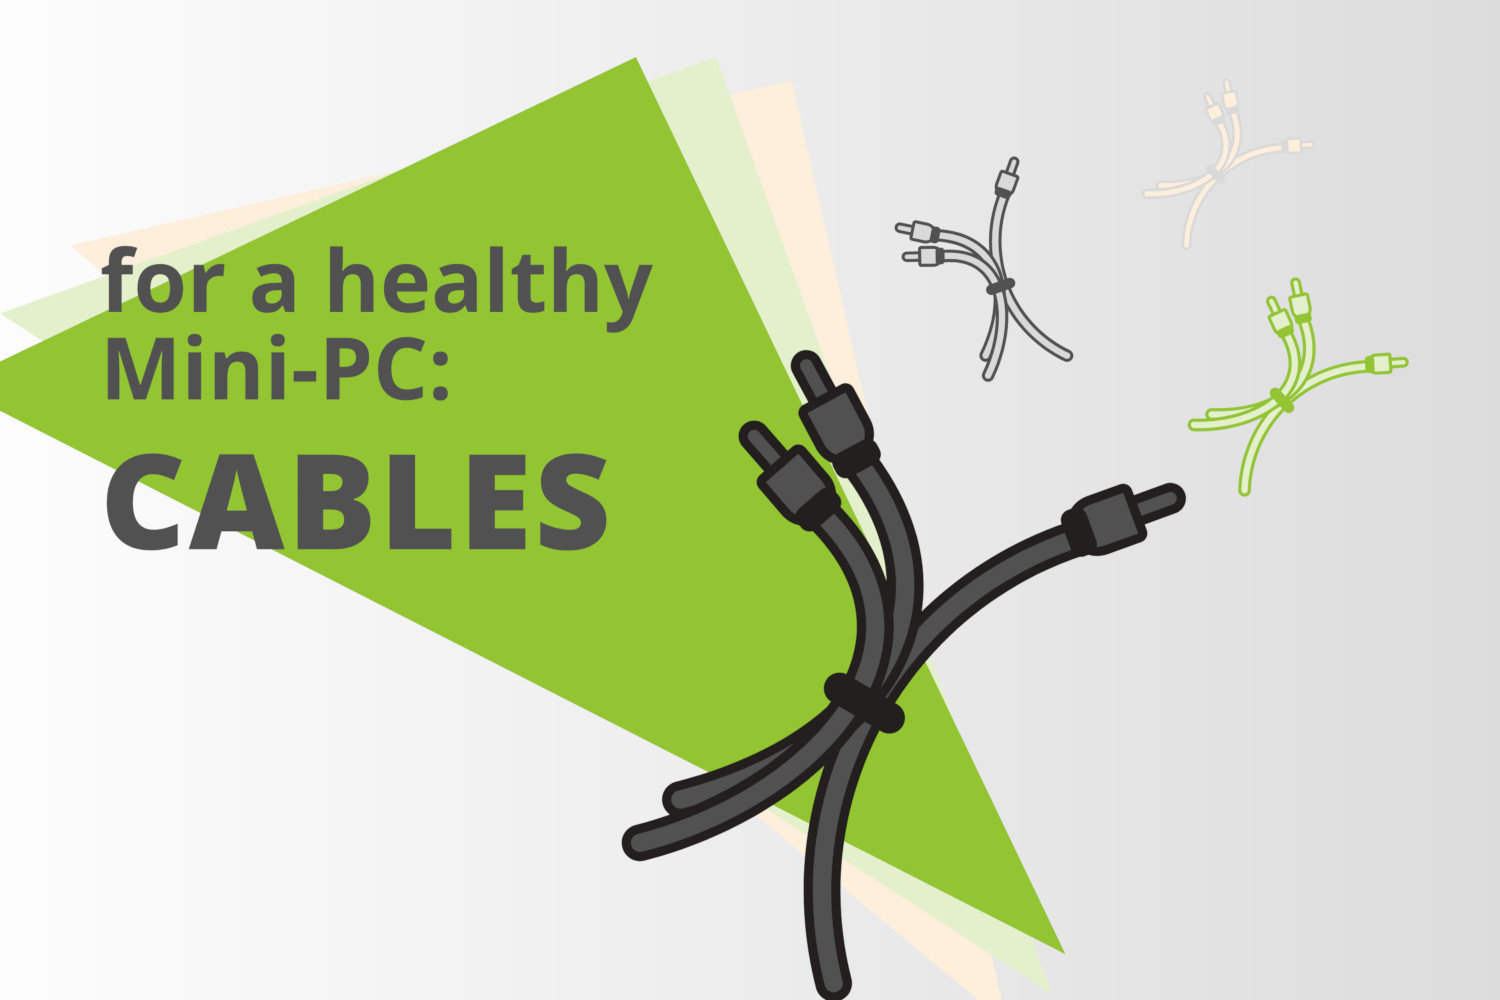 How can my Mini-PC stay healthy? Part 3: Cables